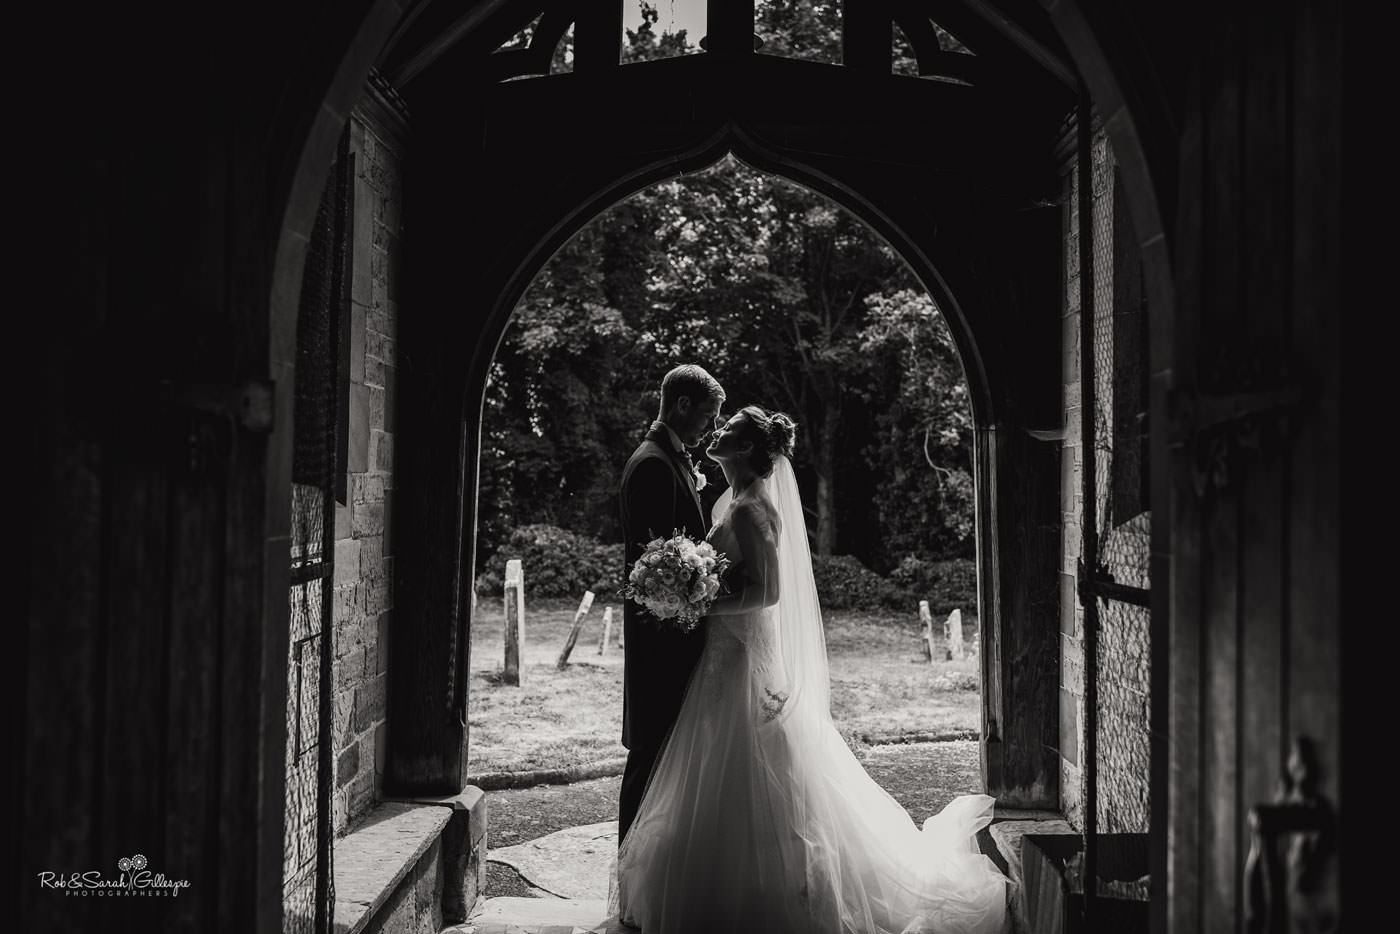 Bride and groom in doorway at St Peter's Church in Diddlebury